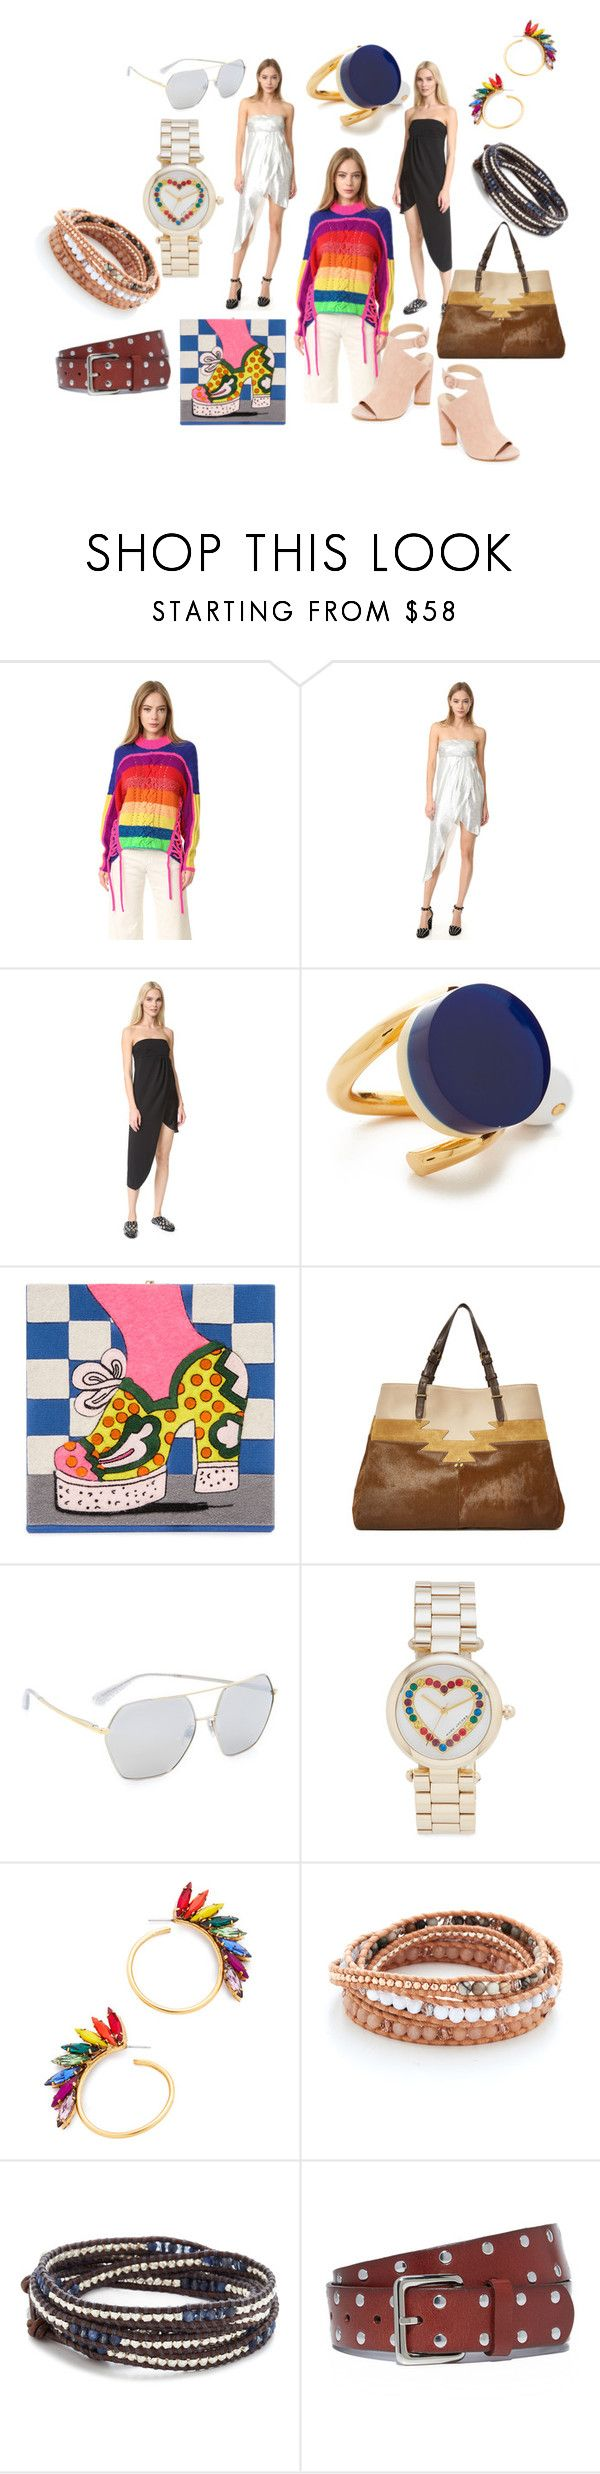 """""""life is beautiful"""" by monica022 ❤ liked on Polyvore featuring Spencer Vladimir, Baja East, Marni, Olympia Le-Tan, Jérôme Dreyfuss, Dolce&Gabbana, Marc Jacobs, Elizabeth Cole, Chan Luu and Rebecca Minkoff"""